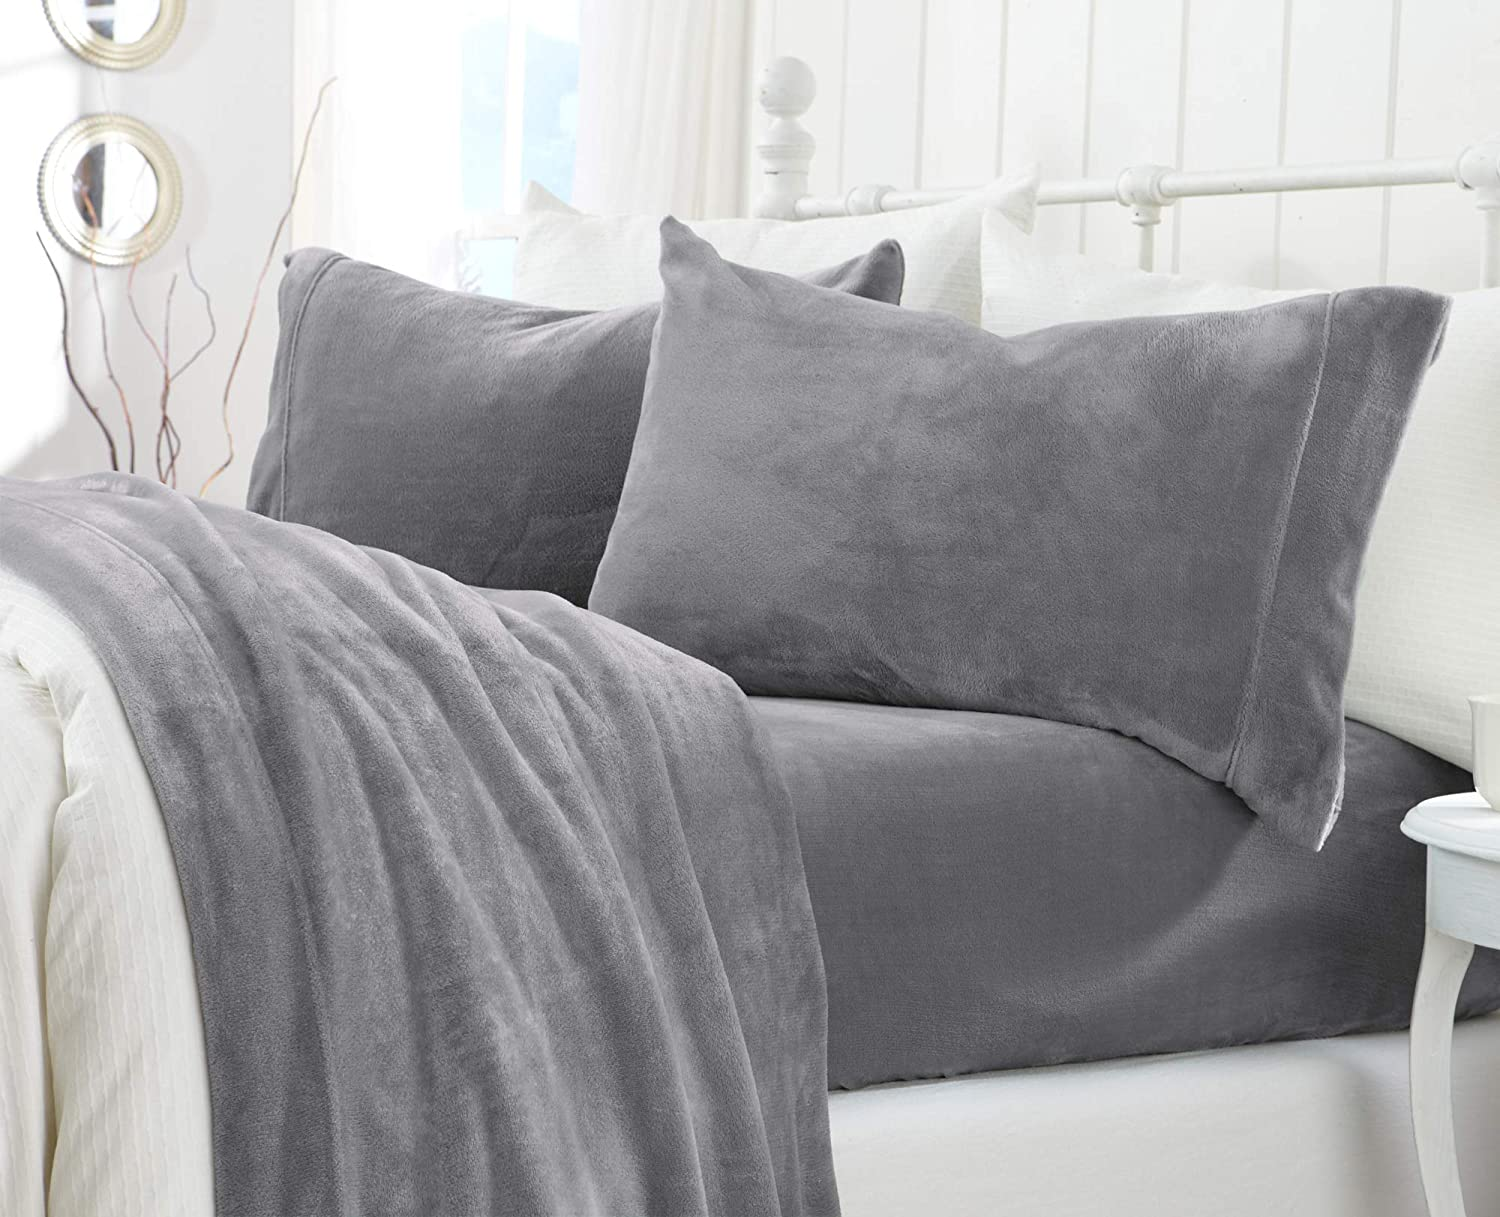 Extra Soft Cozy Velvet Plush Sheet Set. Deluxe Bed Sheets with Deep Pockets. Velvet Luxe Collection (Full, Grey)